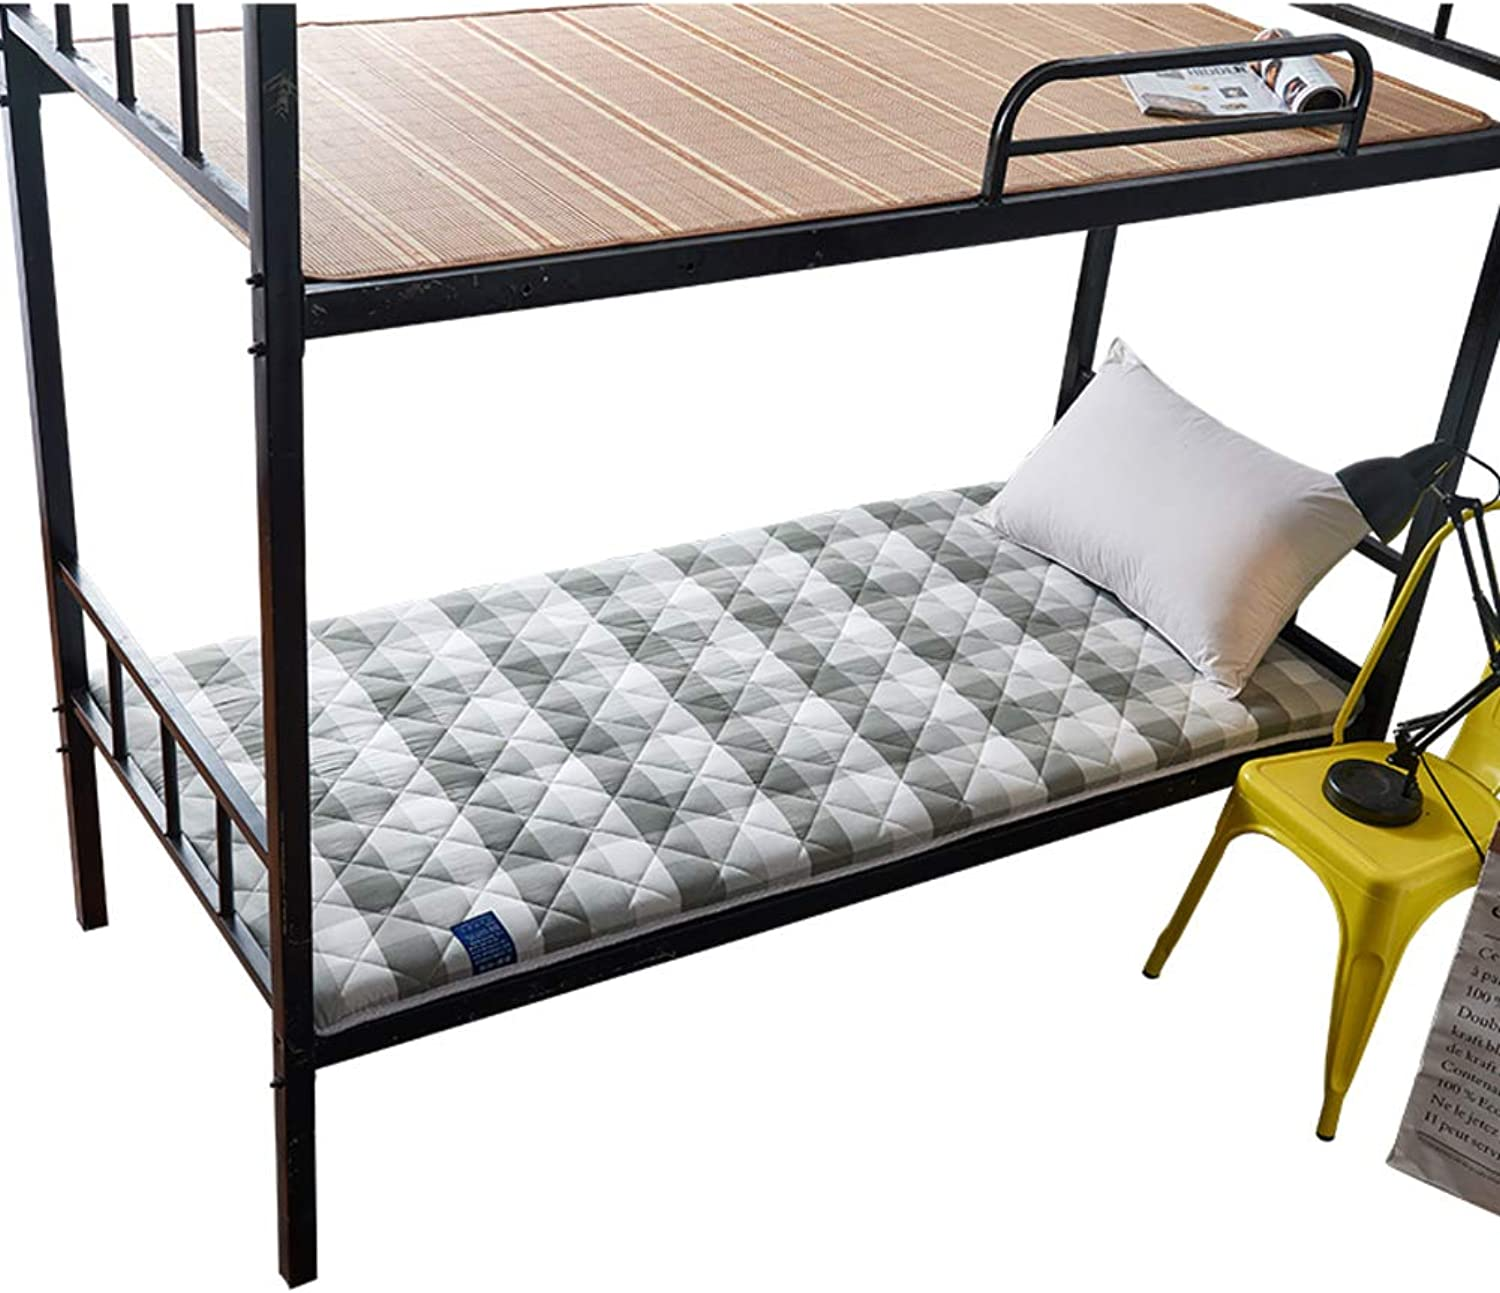 Breathable Japanese Traditional futon Mattress,Folding Compact Fluffy Anti-Bacterial Tatami Student Dormitory-A Full 120x200cm(47x79inch)